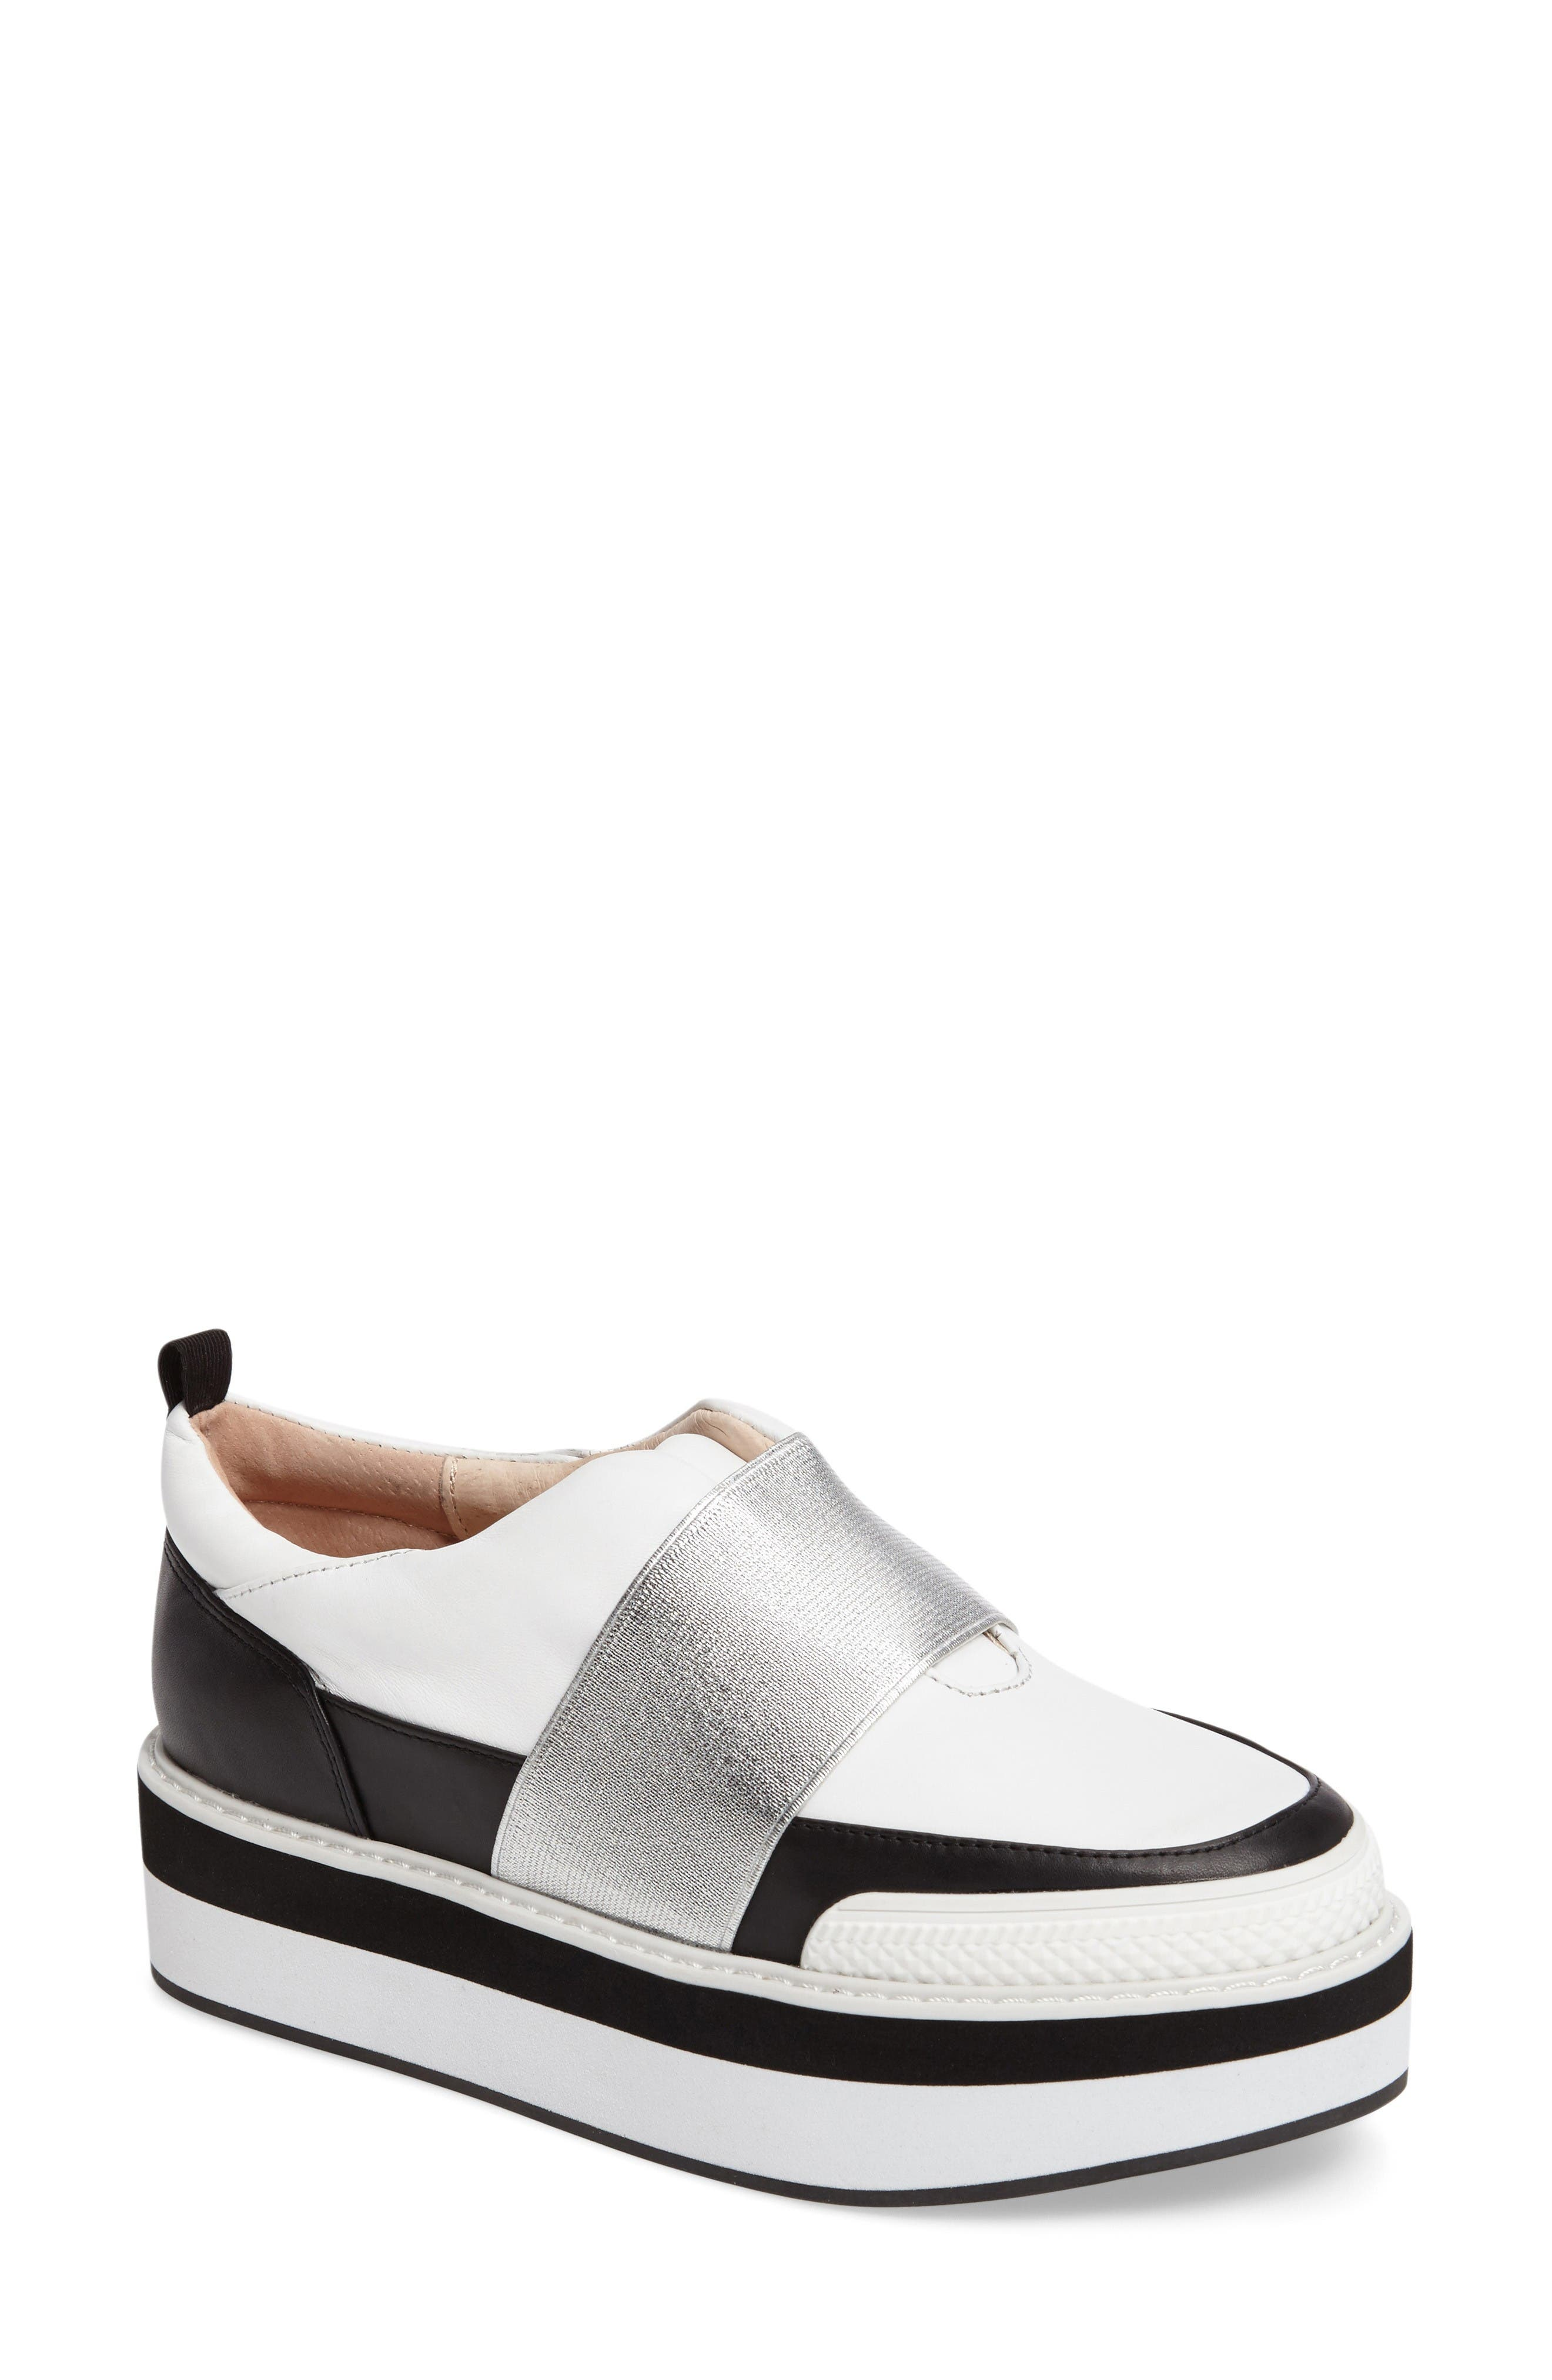 Shellys London Damini Slip-On Platform Sneaker (Women)